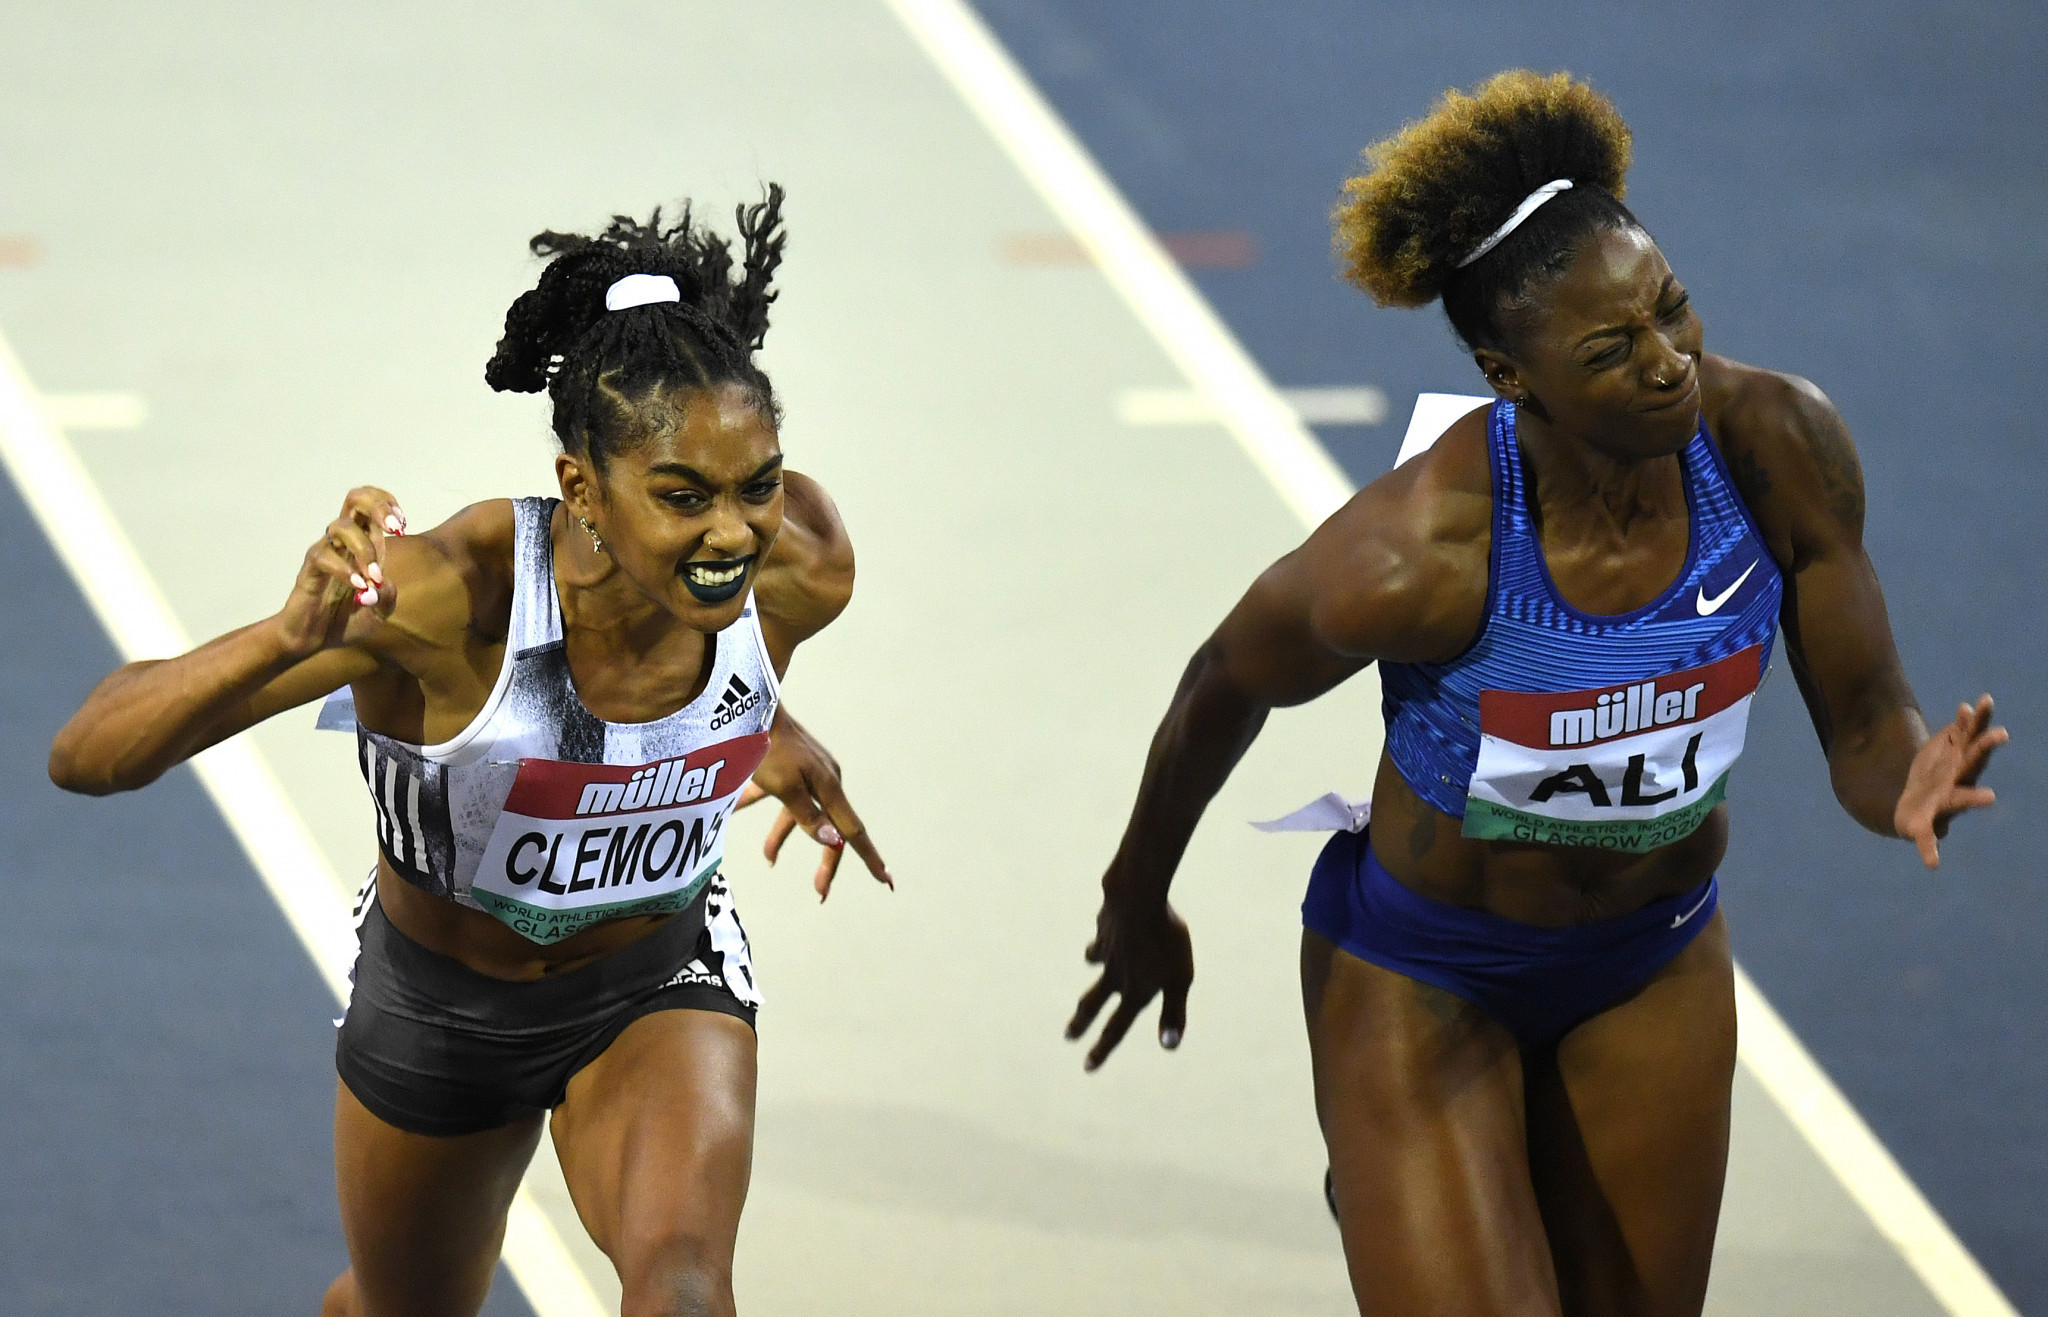 World 100m hurdles champion Nia Ali, right, will be in the field in the women's 60m hurdles in Liévin tomorrow night ©Getty Images